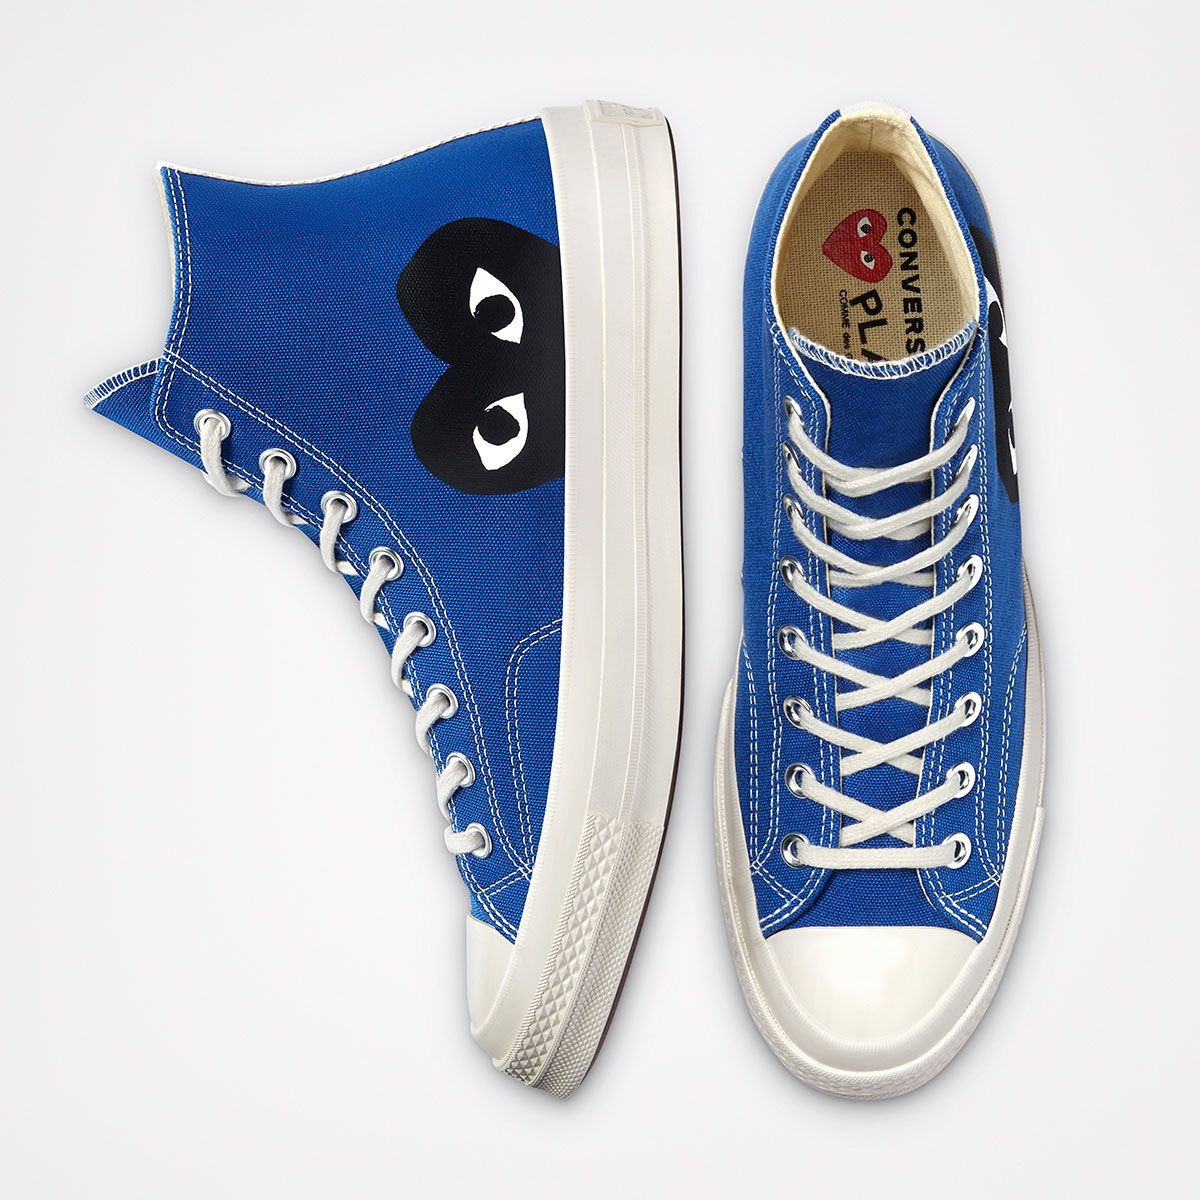 CdG PLAY Is Dropping Some New Chucks We Actually Want to Wear 39